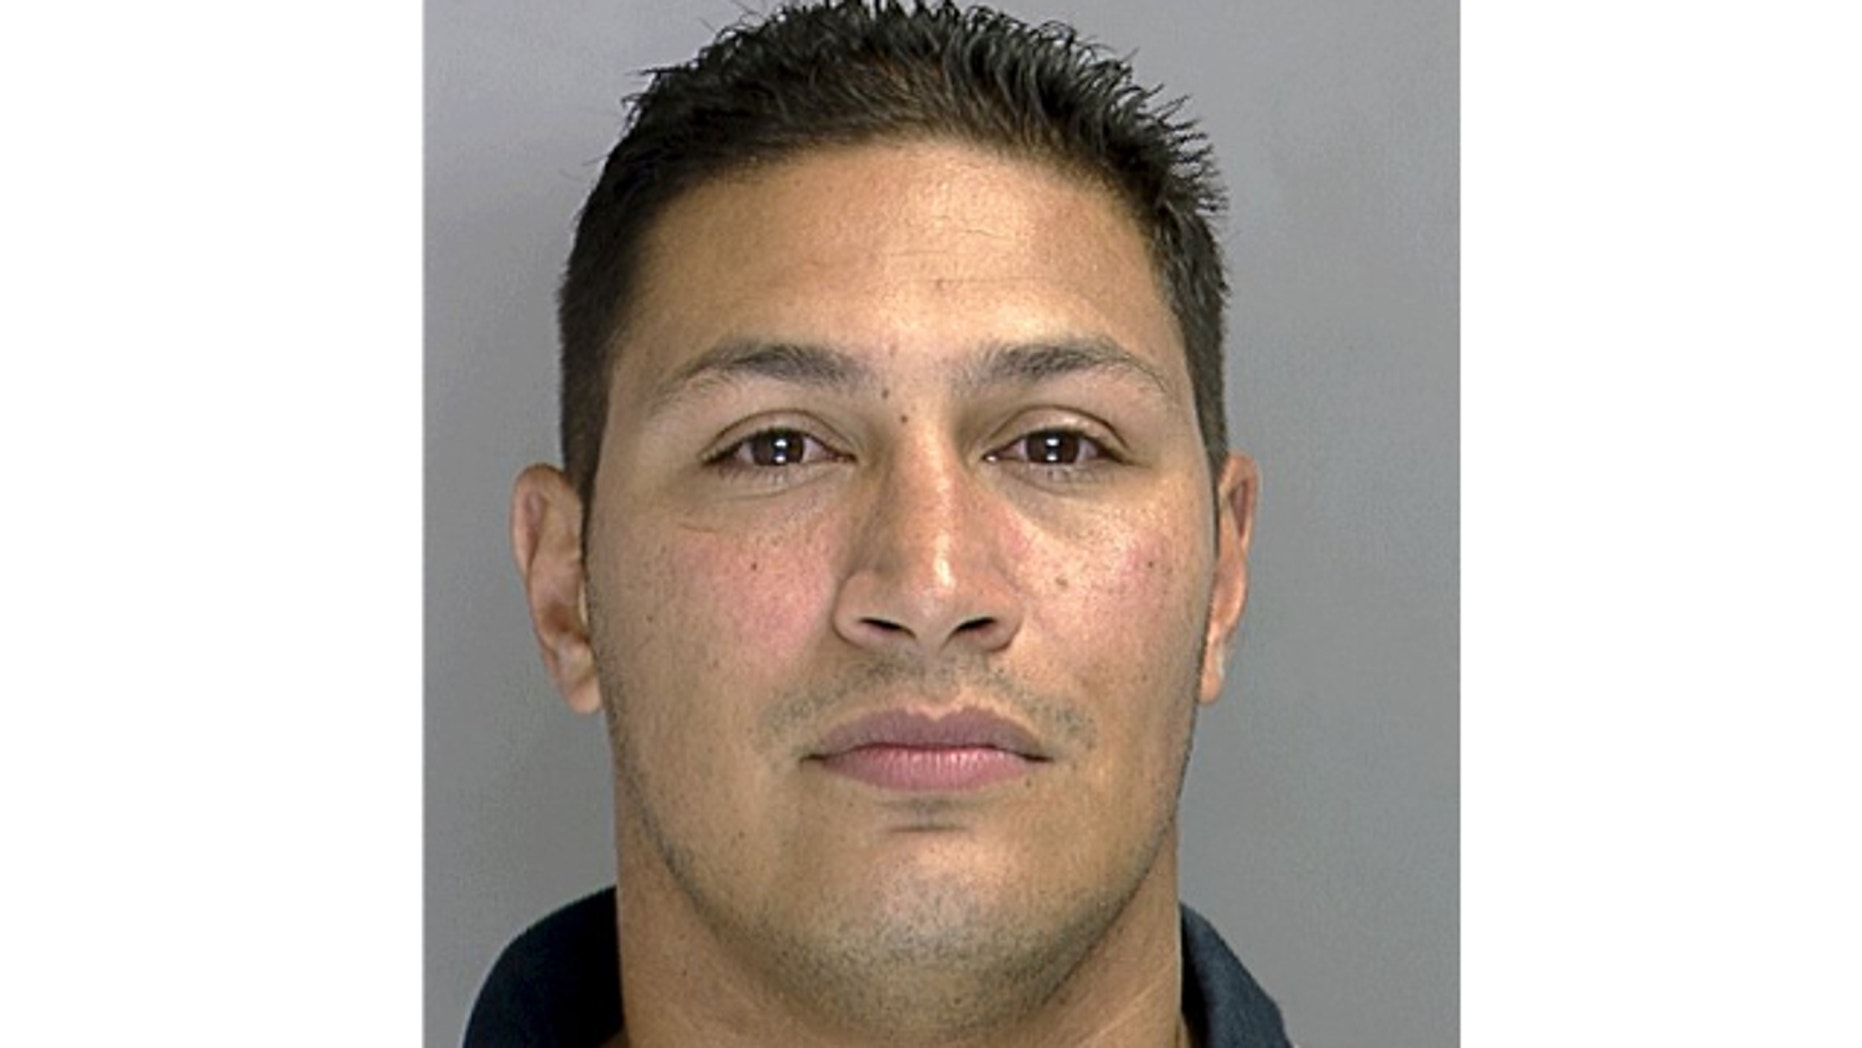 Miguel Torres, 42, has been charged with first-degree murder in Reading, Pa., according to the Marshals Service.